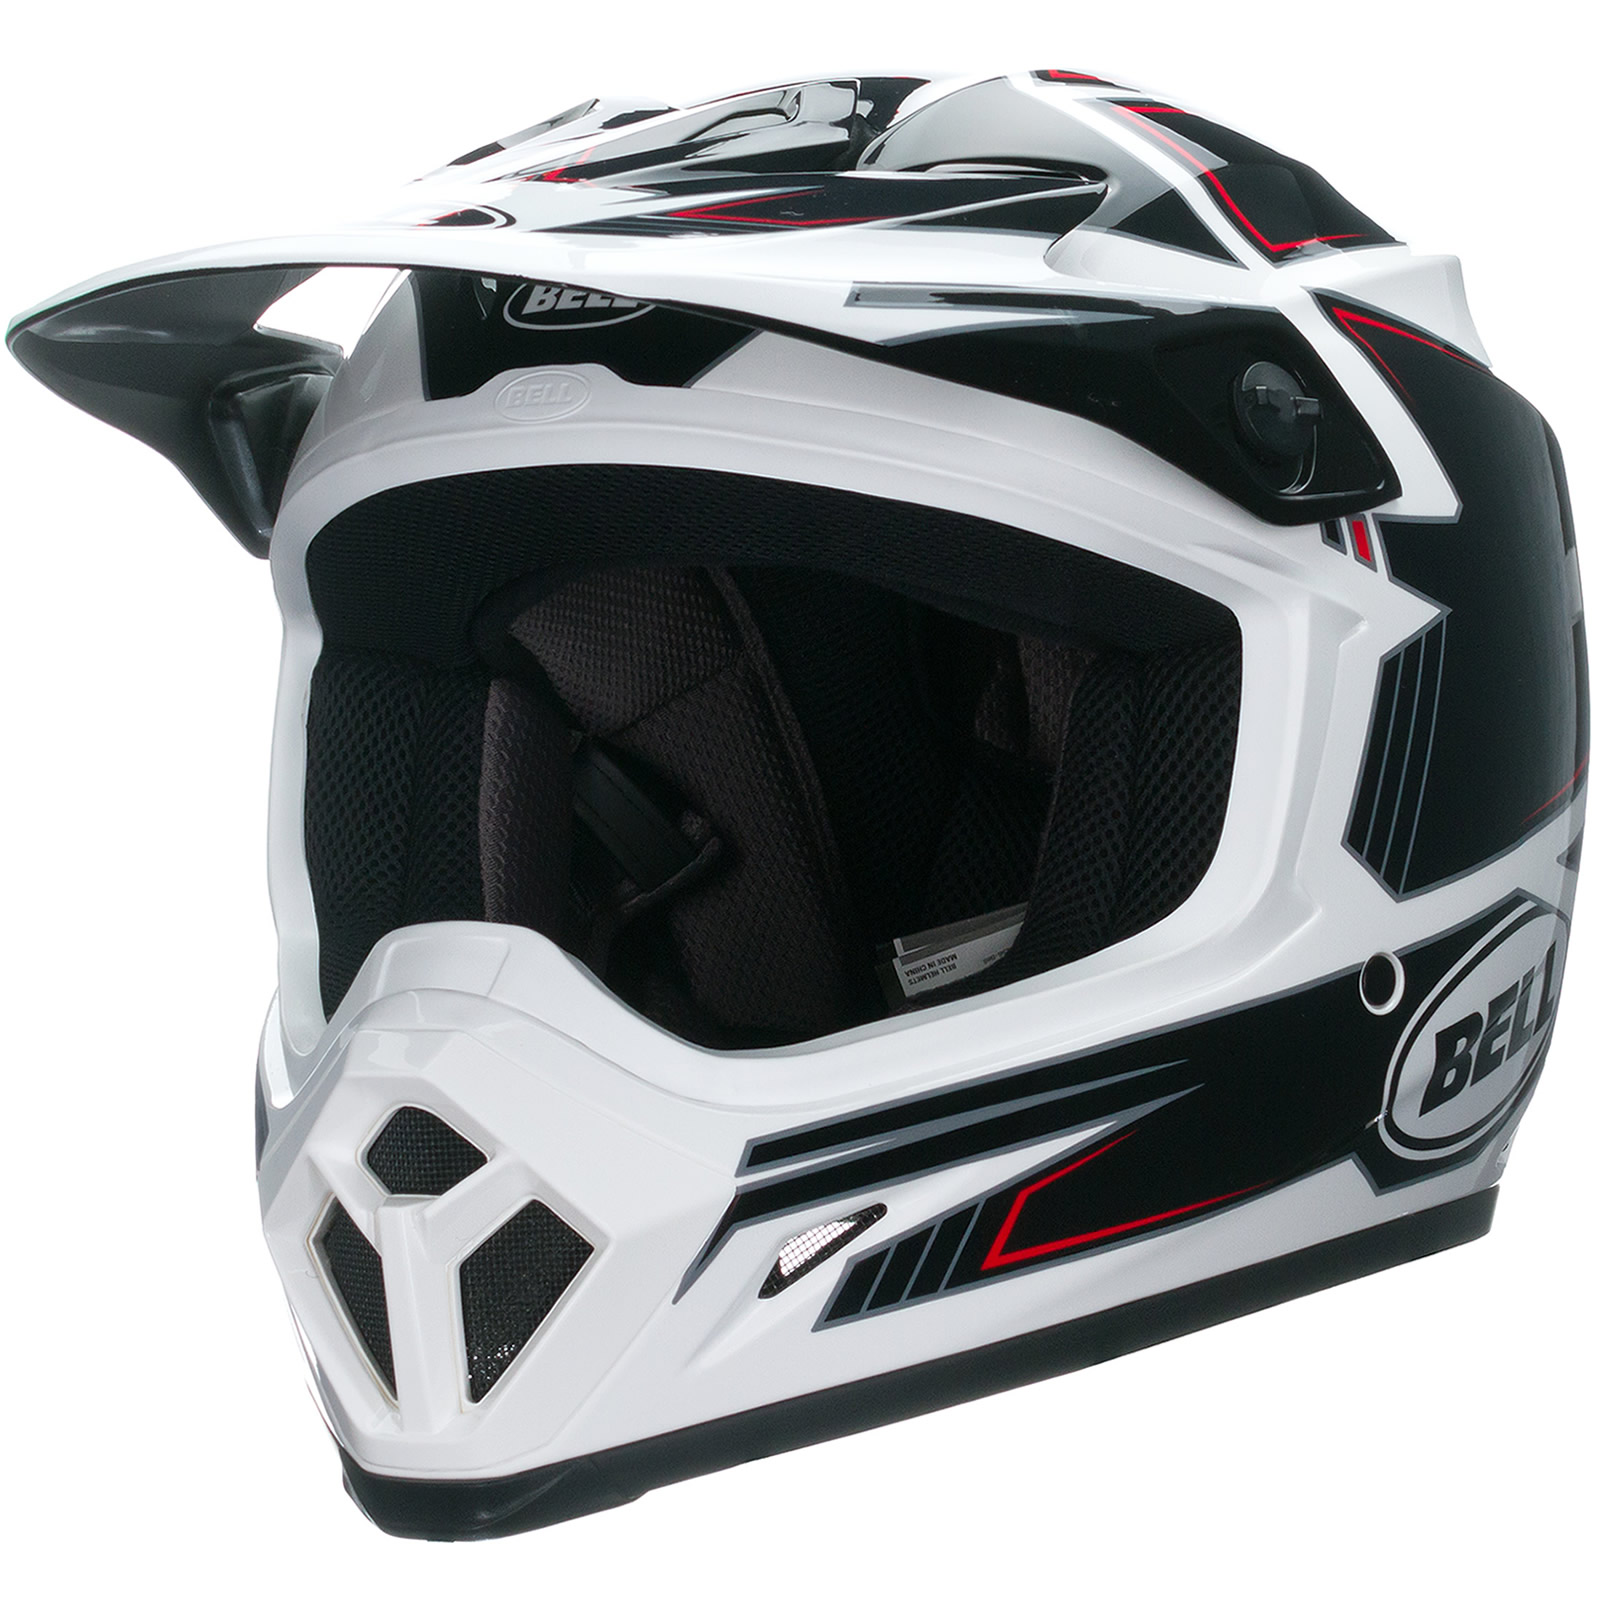 bell mx 9 blockade black motocross helmet mx cross motox quad enduro off road ebay. Black Bedroom Furniture Sets. Home Design Ideas